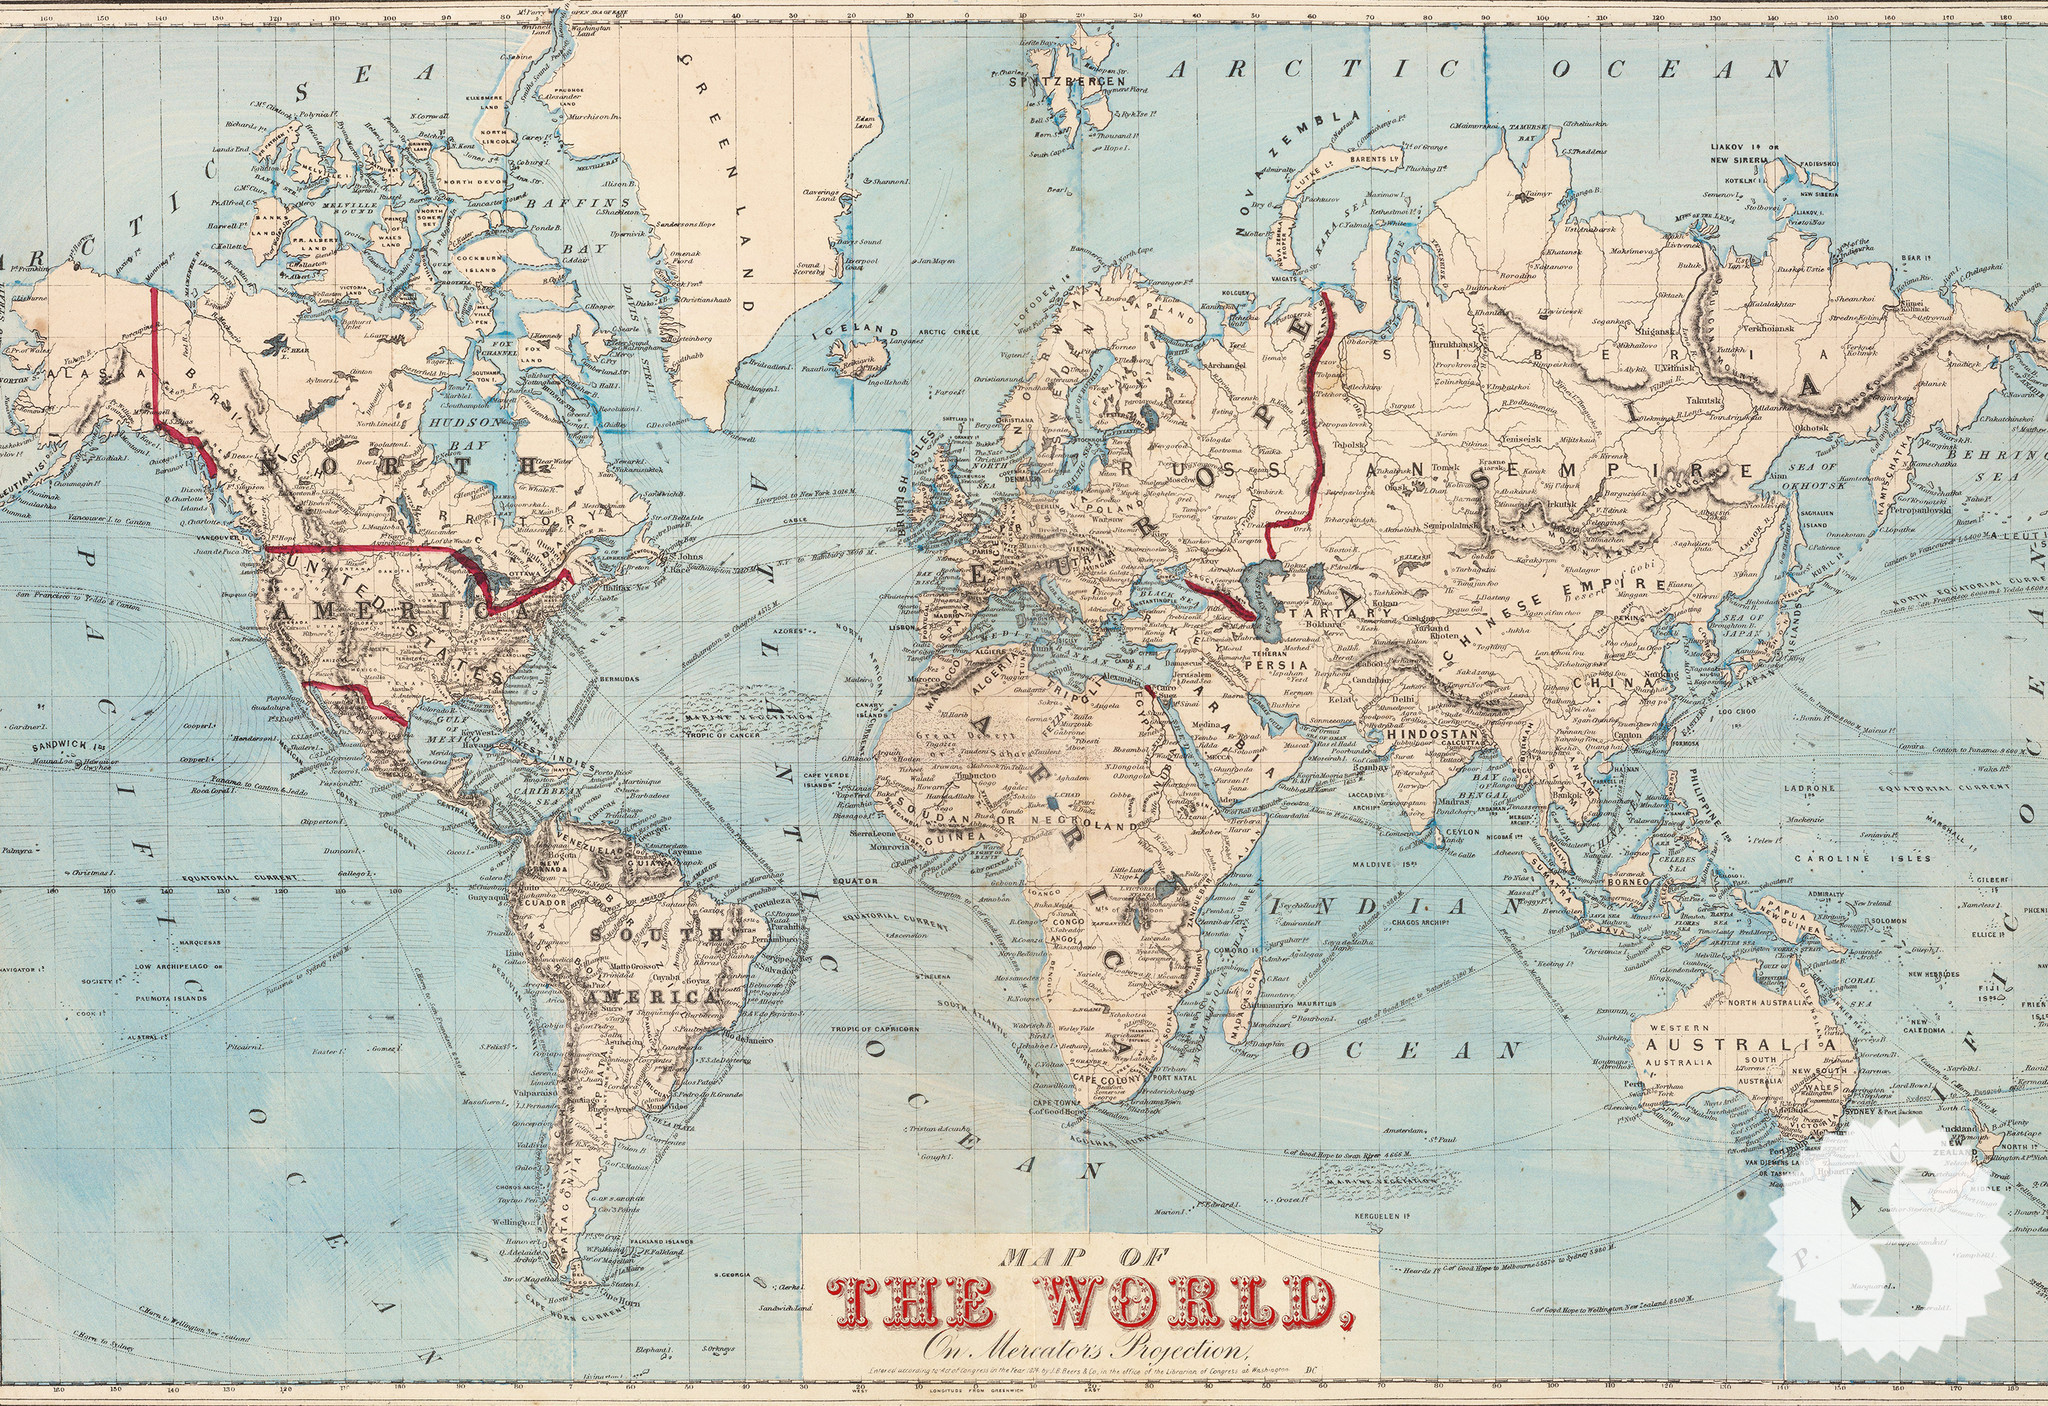 Download world map wallpaper free for pc hd wallpapers blog vintage maps backgrounds pc mobile gadgets compatible source 1920x1080 september 2012 calendar wallpaper 1920x1080 download world map gumiabroncs Image collections